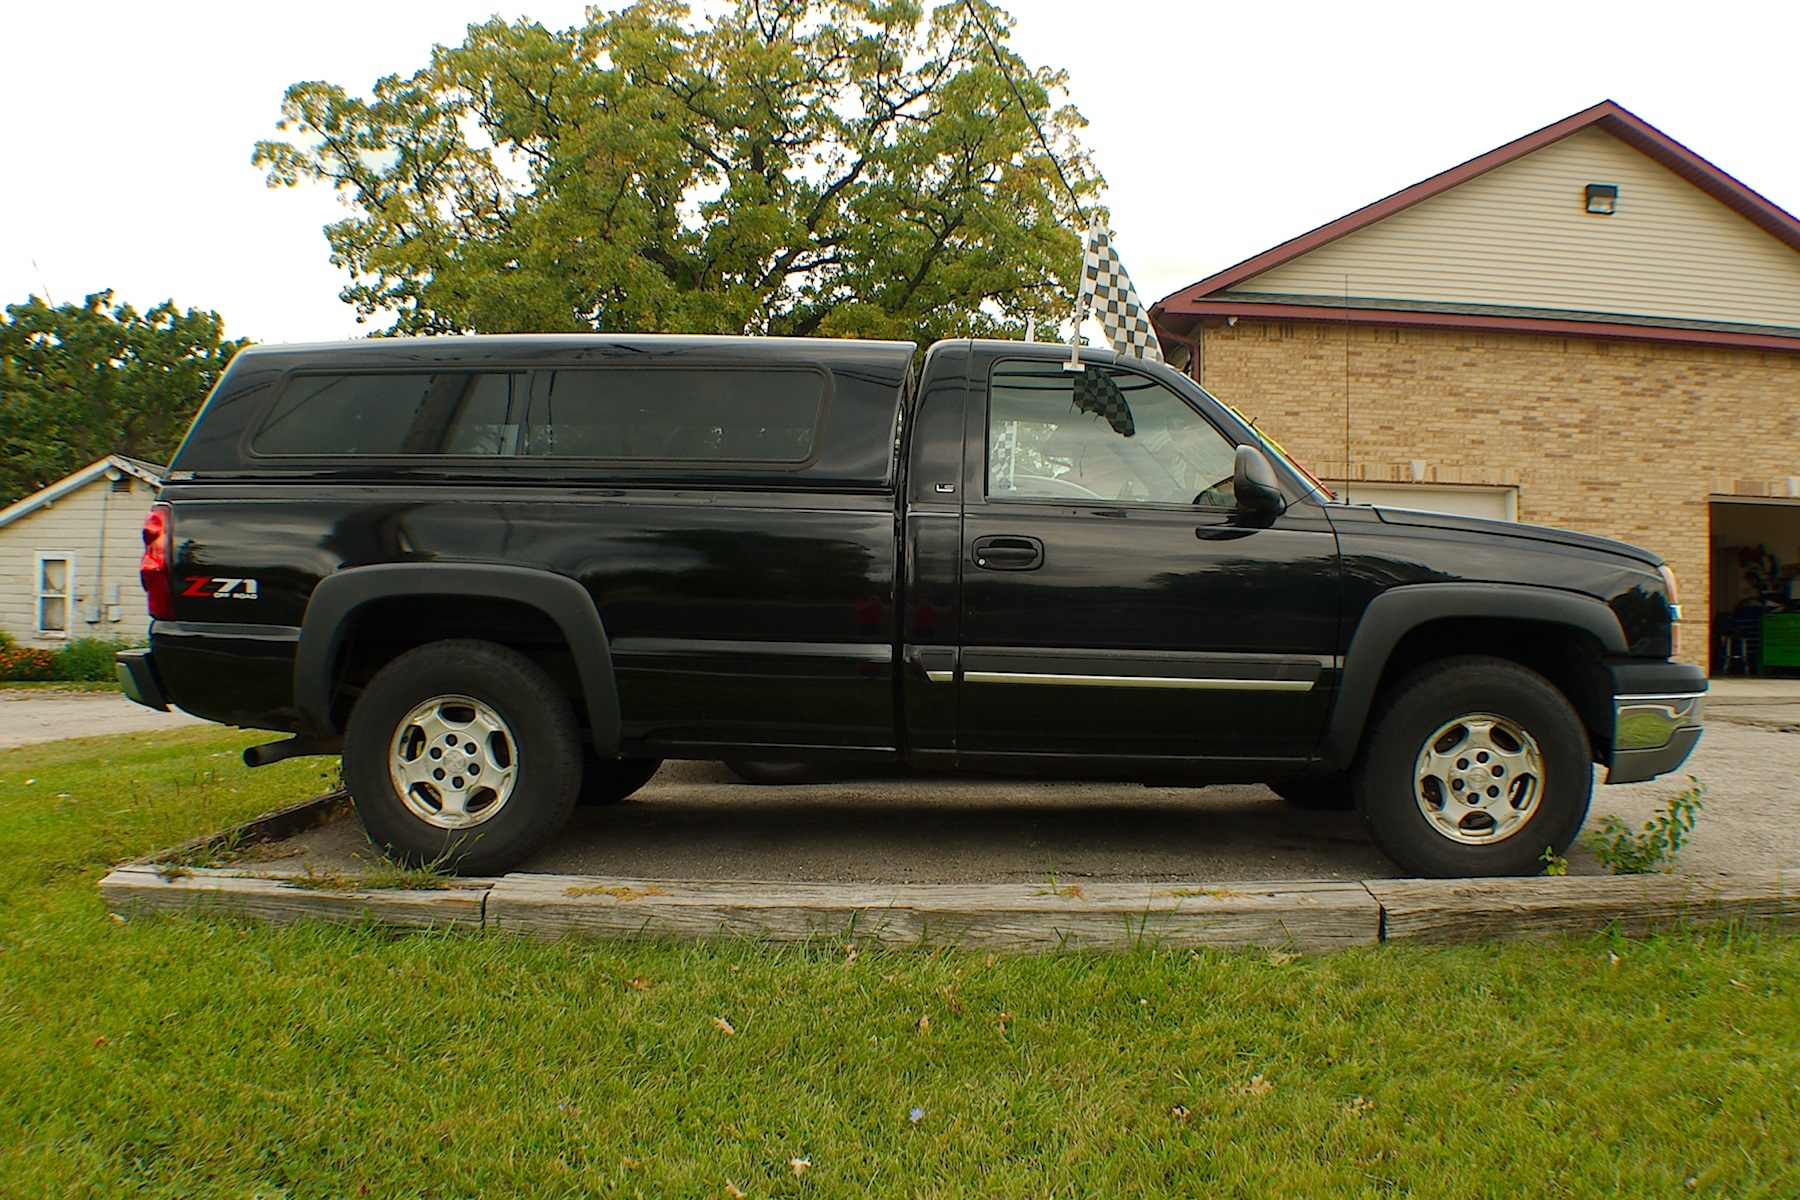 2003 Chevy Silverado LS Black 4x4 Z71 Truck Sale Bannockburn Barrington Beach Park